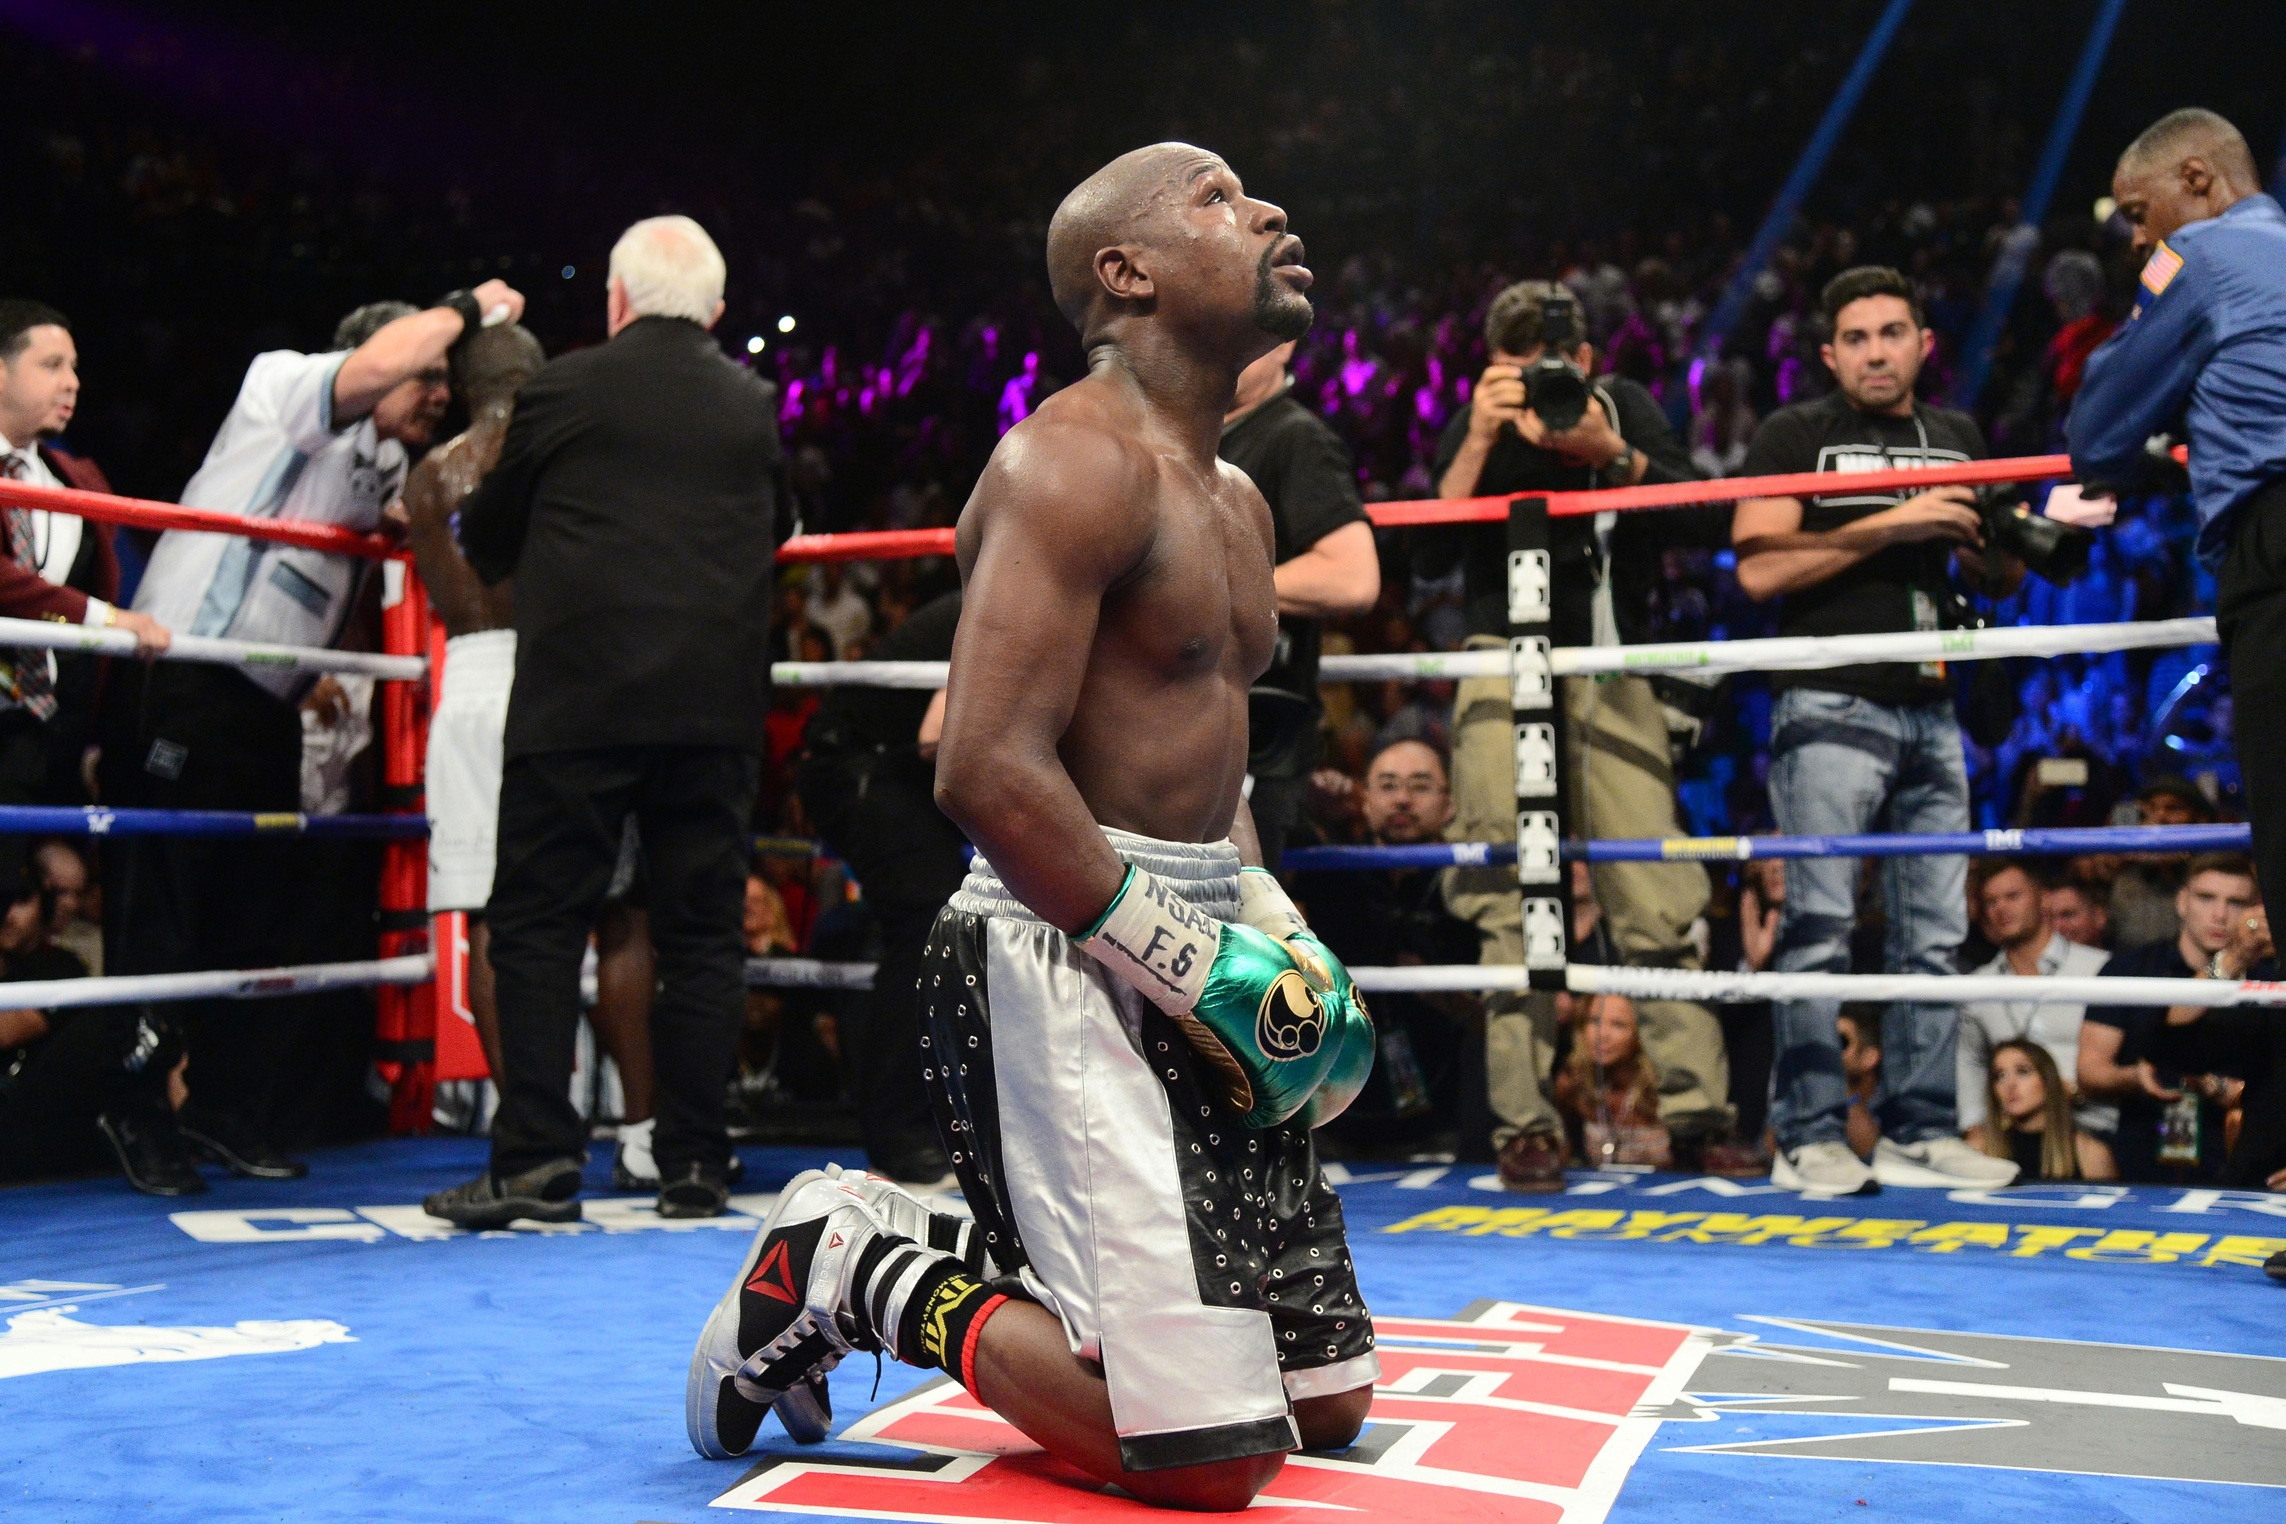 Mayweather vs. McGregor fight scheduled for Aug. 26 ...